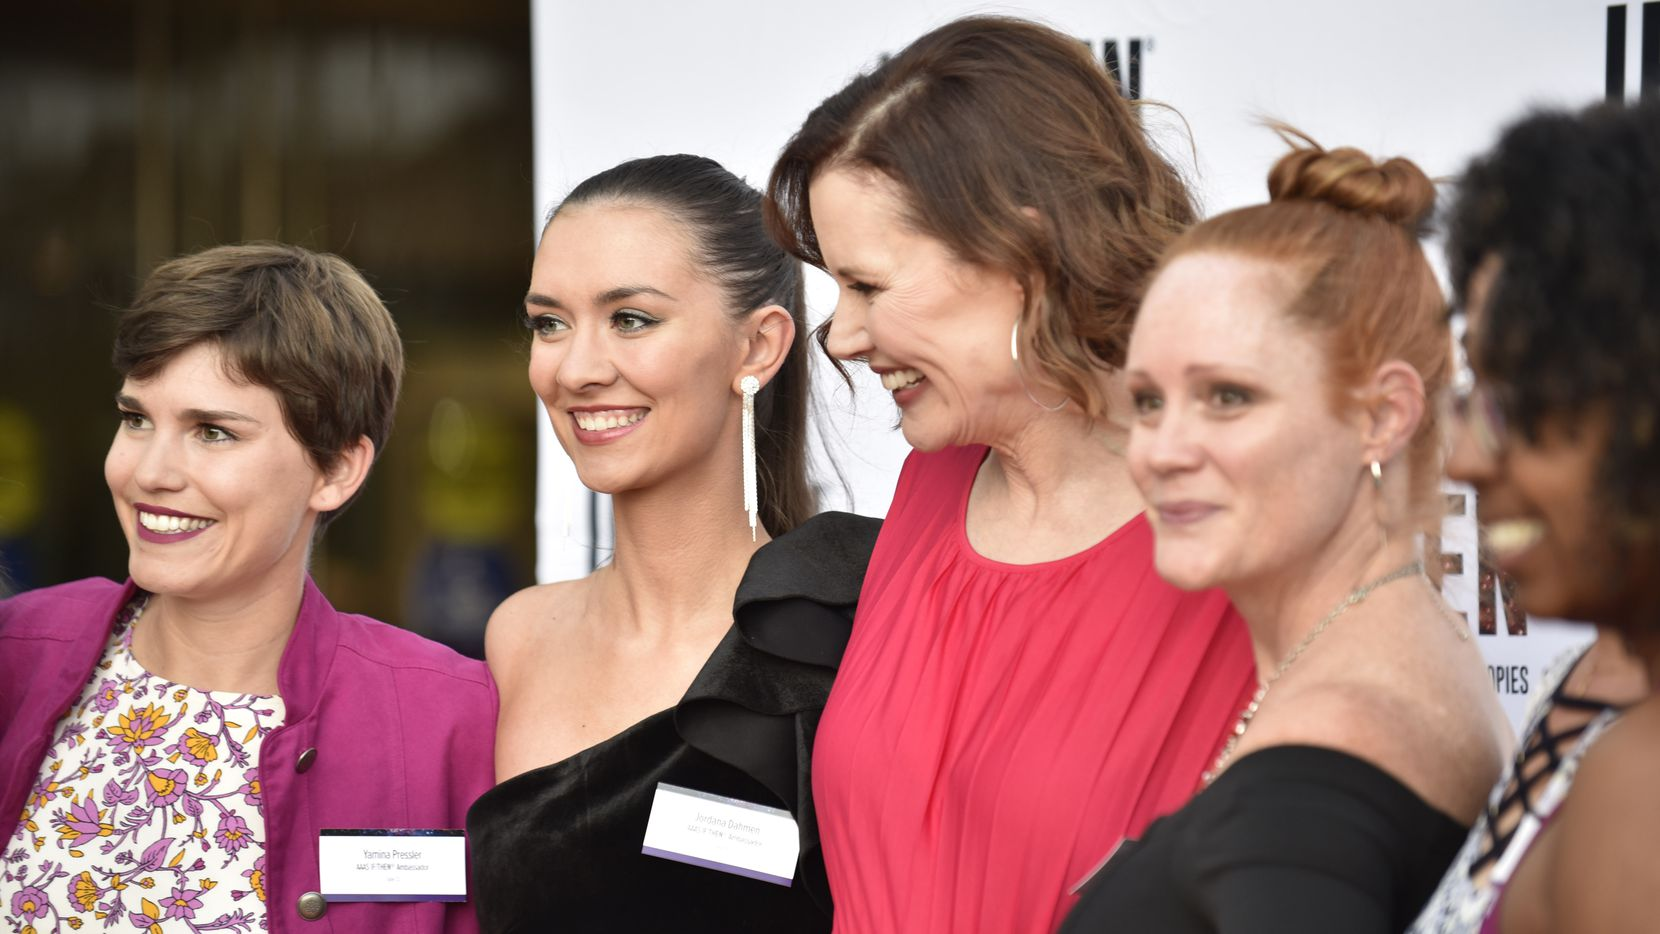 """Yamina Pressler, far-left, and Jordan Damen, left, both IF/THEN Ambassadors, pose for a photo with other ambassadors and actor Geena Davis, third from right, during a red carpet event for the IF/THEN Ambassador Summit """"An Evening of Science and Storytelling,"""" at the Perot Museum of Nature and Science in Dallas, on Monday, Oct 21, 2019. Davis is also the founder of the Geena Davis Institute on Gender in Media. (Ben Torres/Special Contributor)"""